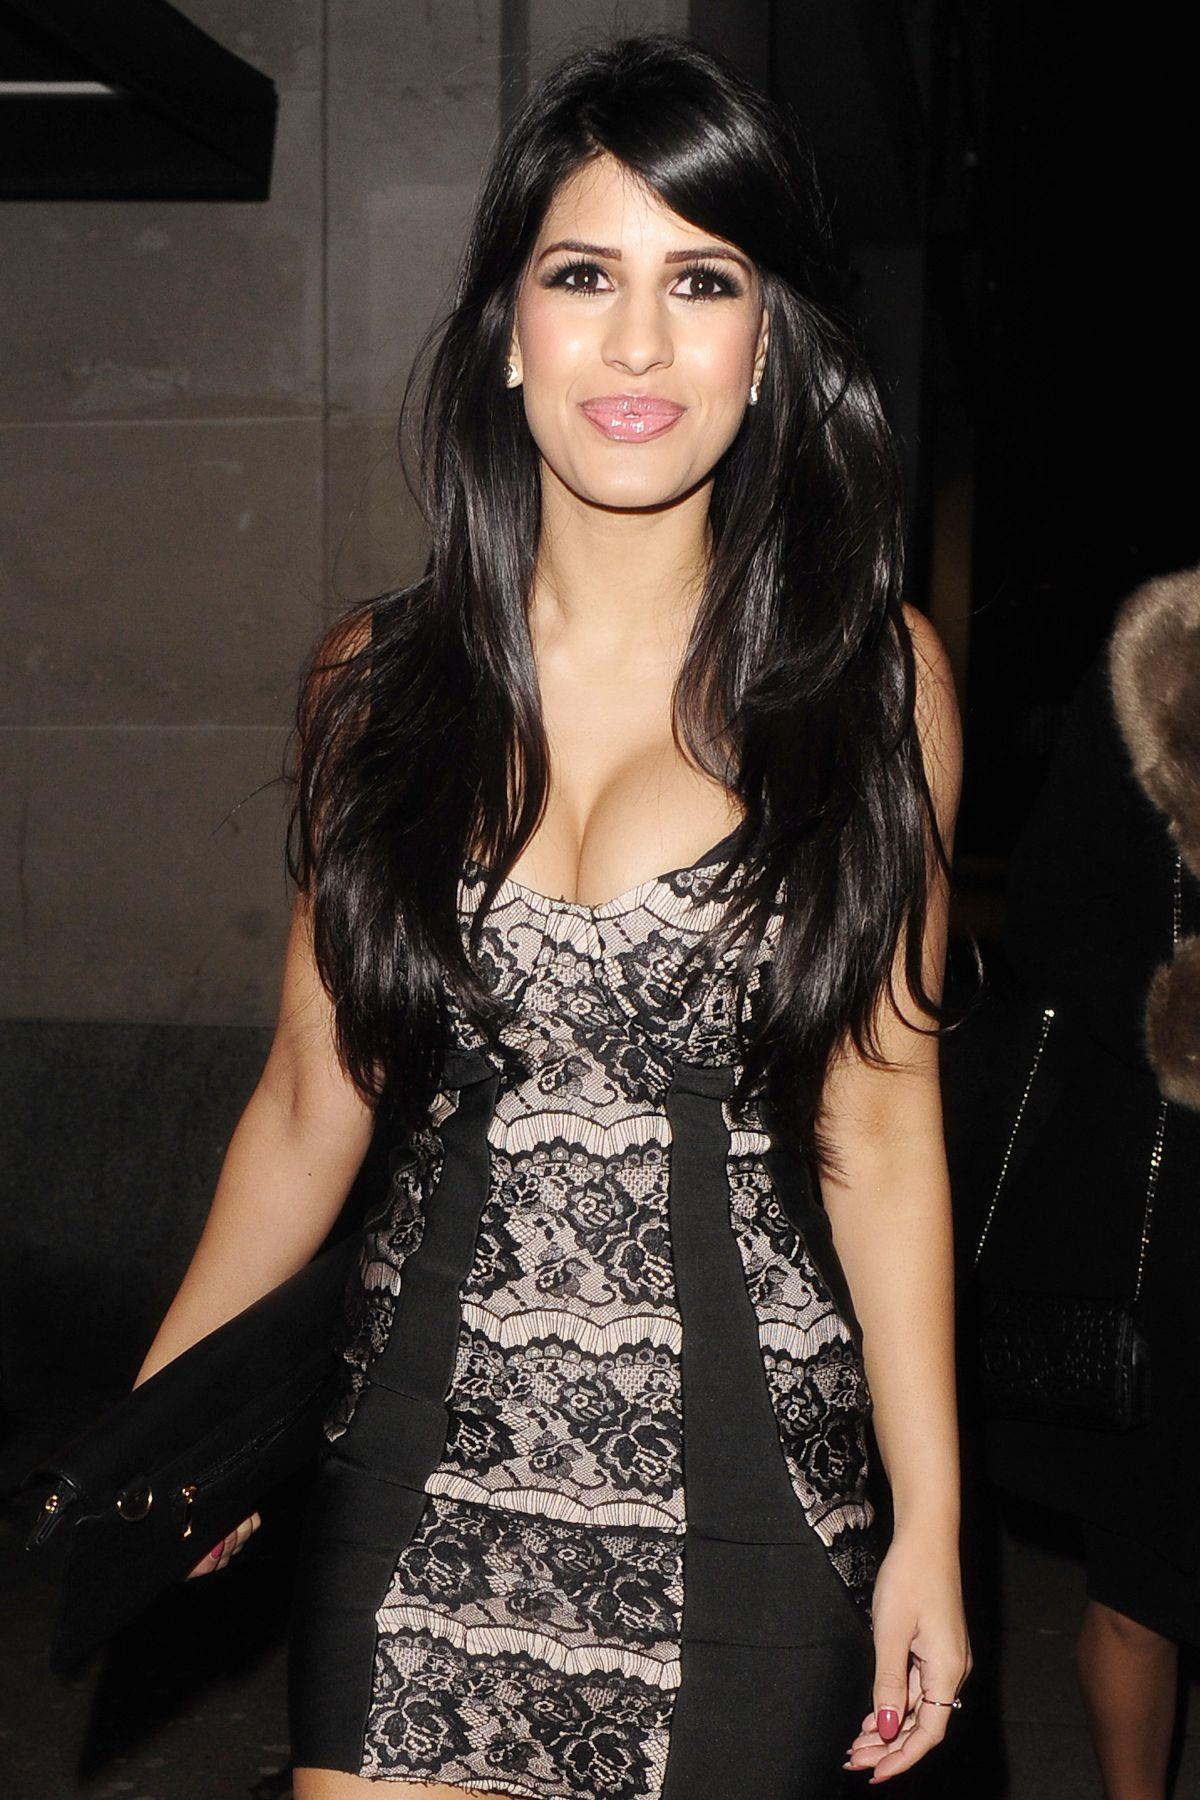 Girls Without Clothes Wallpaper Jasmin Walia In Tight Mini Dress At Mayfair Club In London